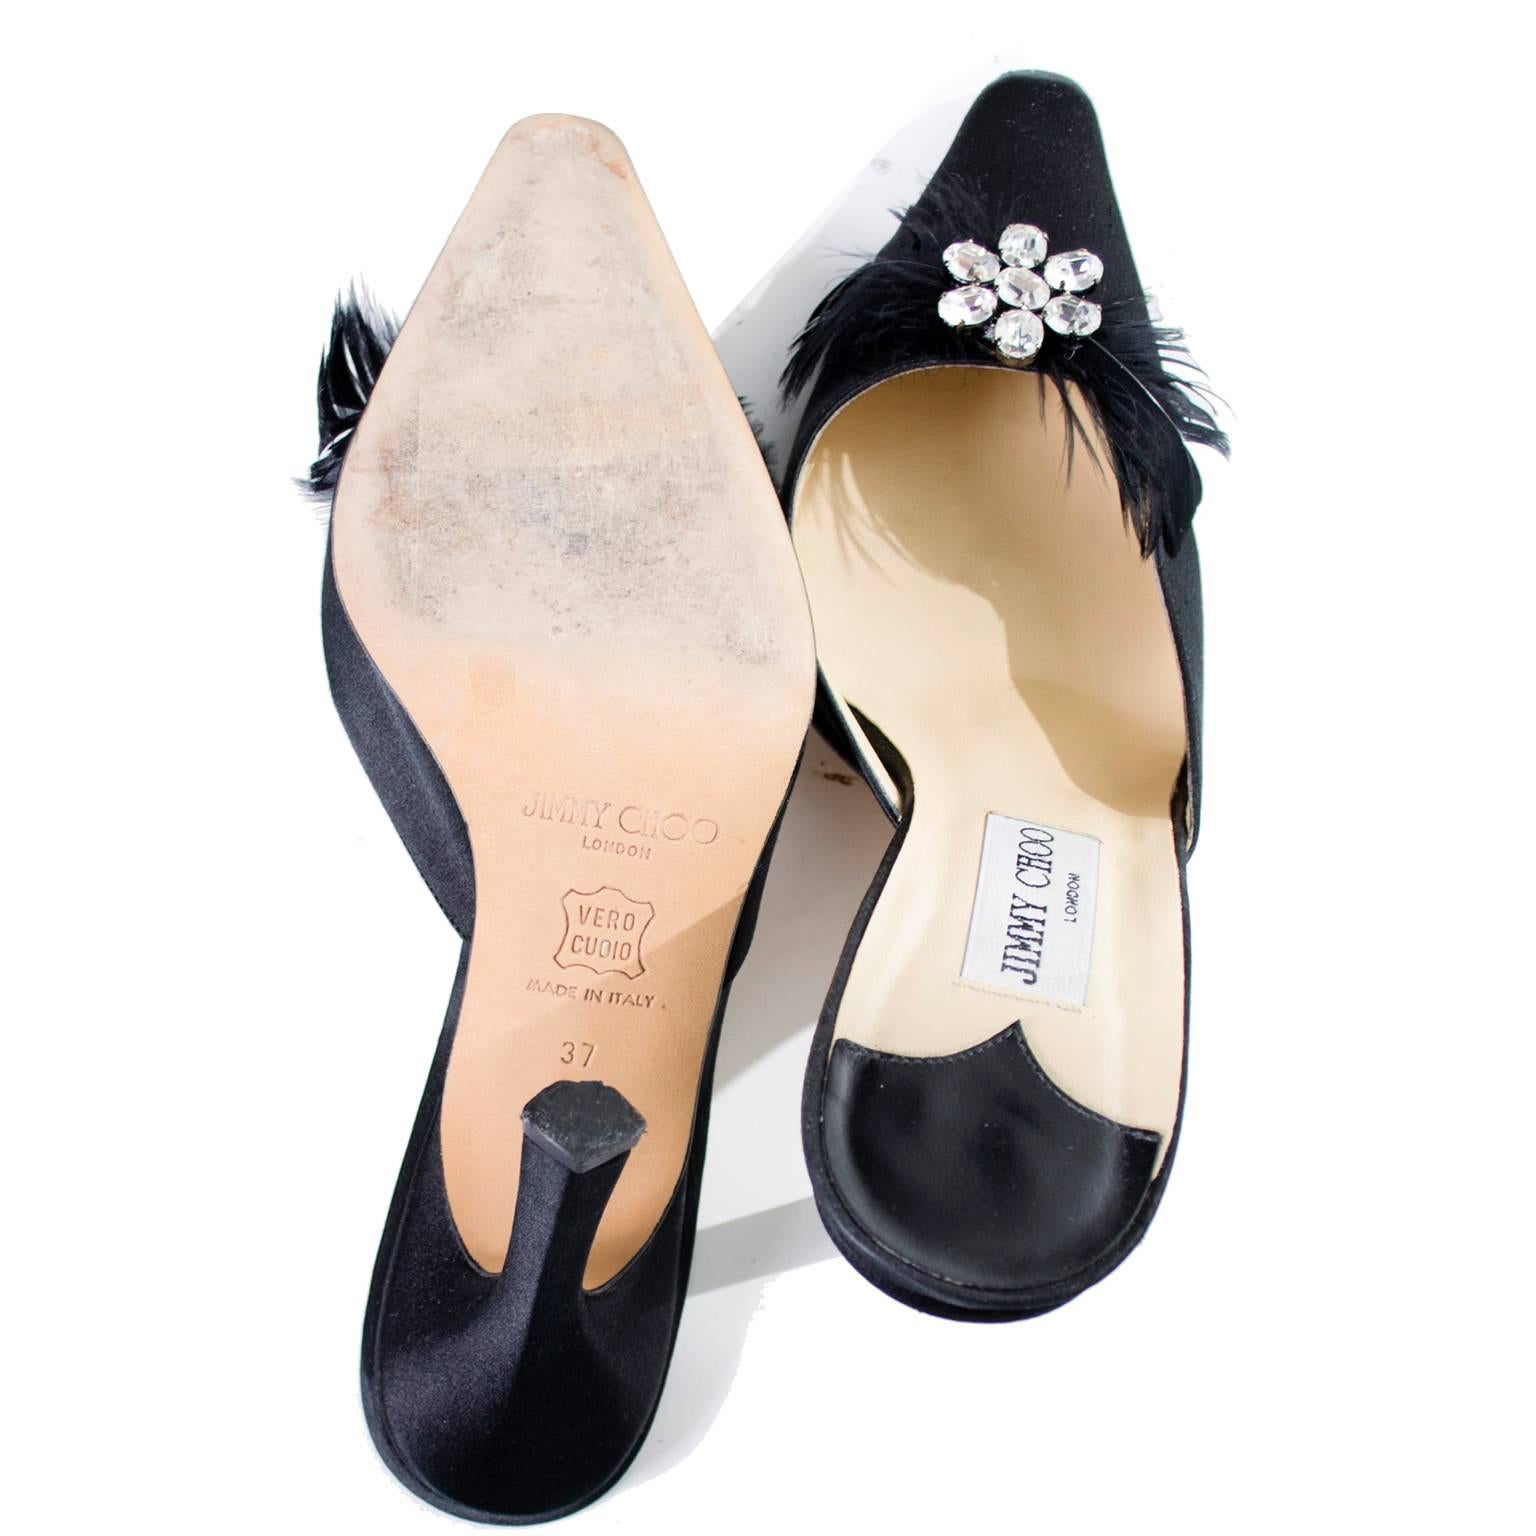 455cabed3ce Jimmy Choo Black Satin Shoes Rhinestones Feathers Heels Size 37 For Sale at  1stdibs